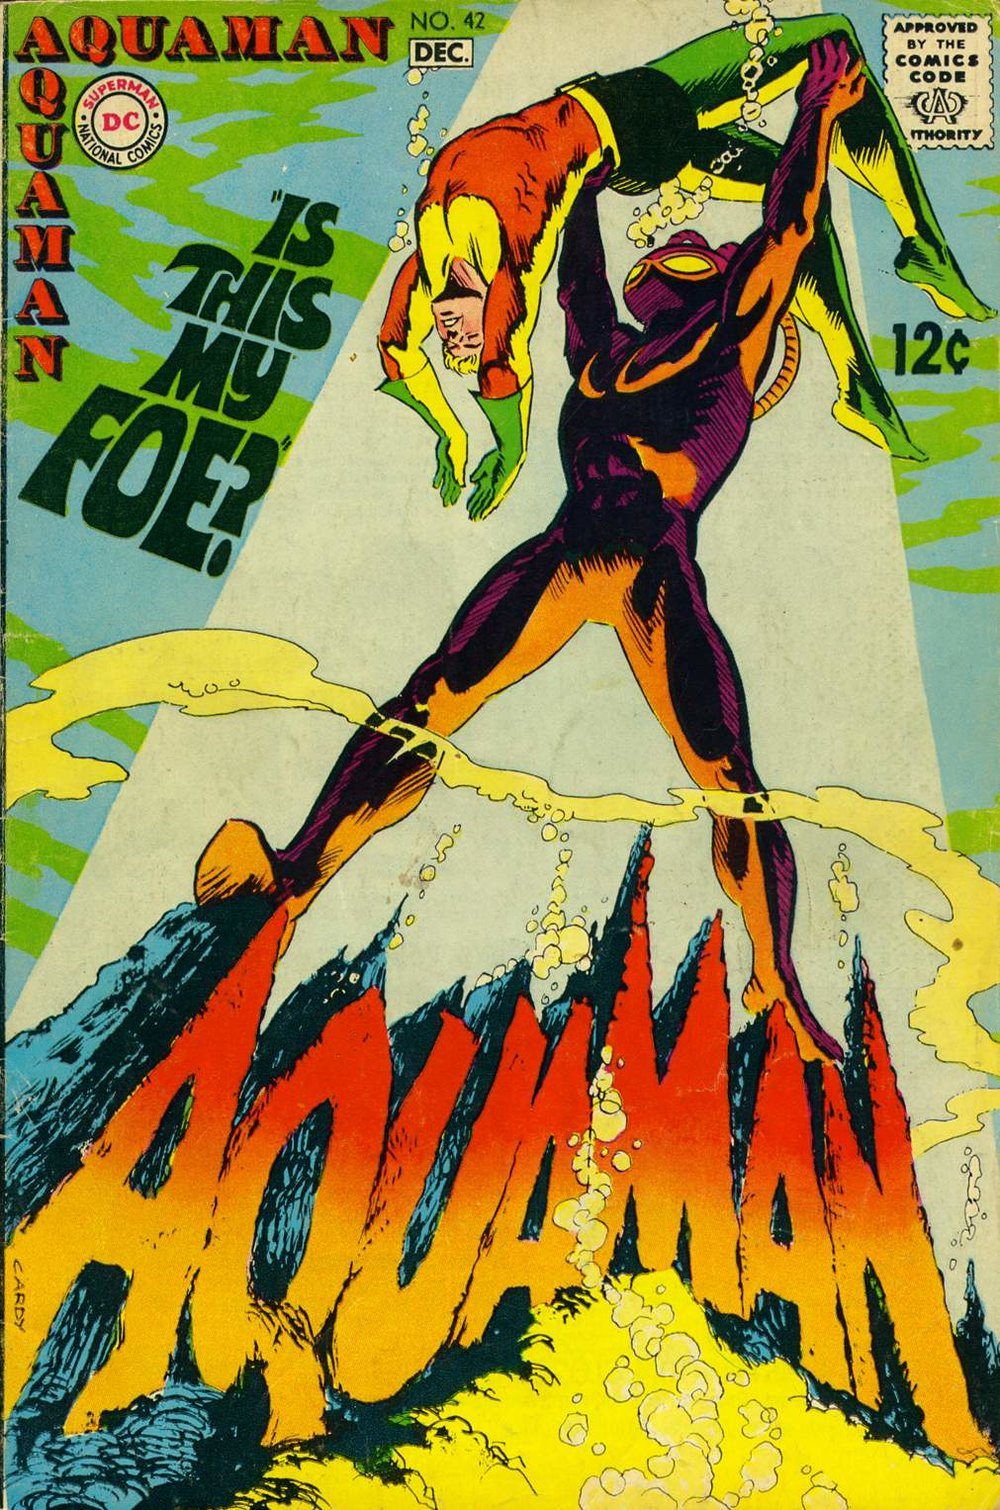 Aquaman (1962) #42, cover by Nick Cardy.